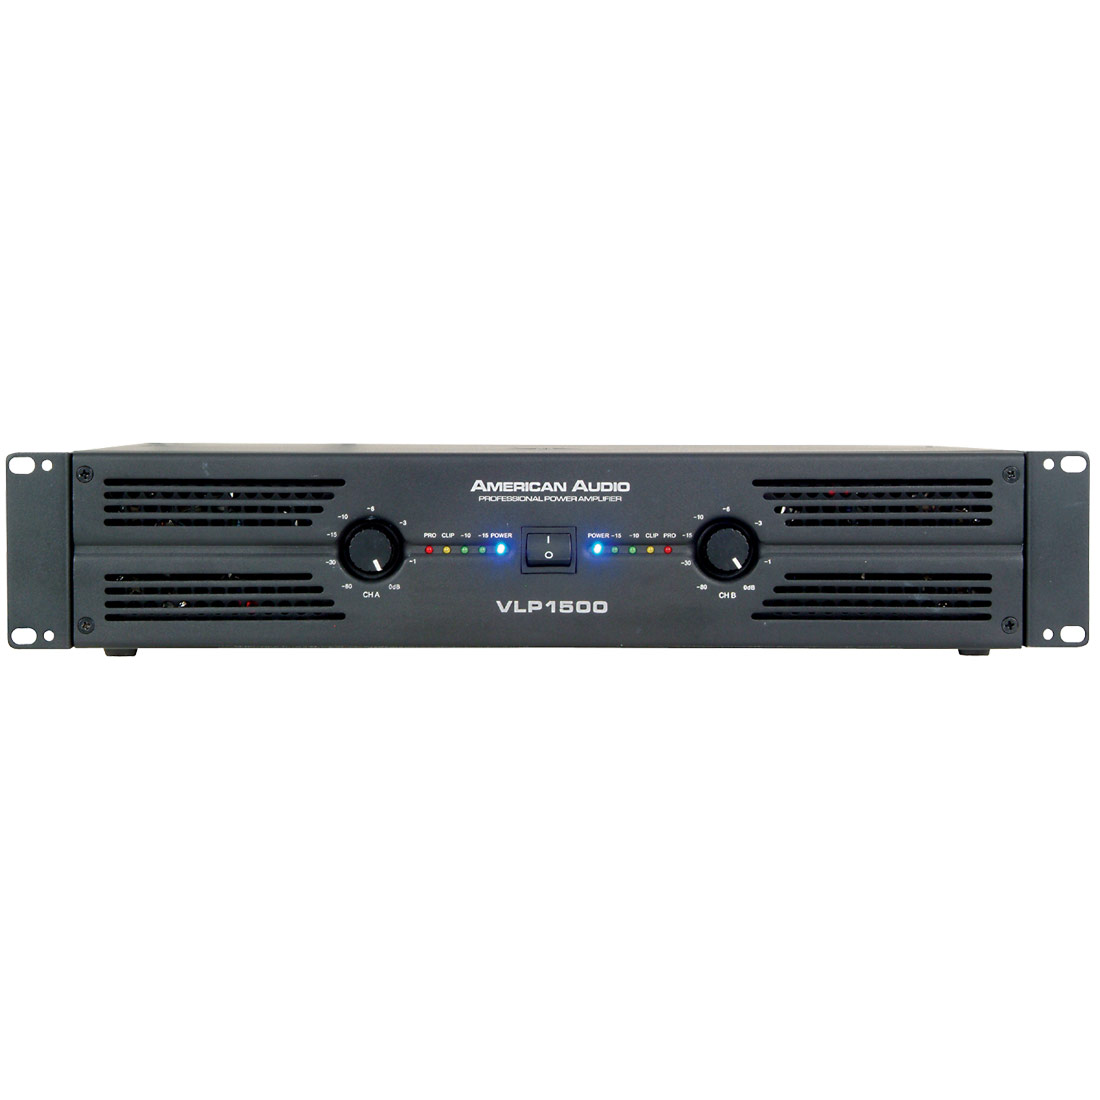 VLP1500 power amplifier